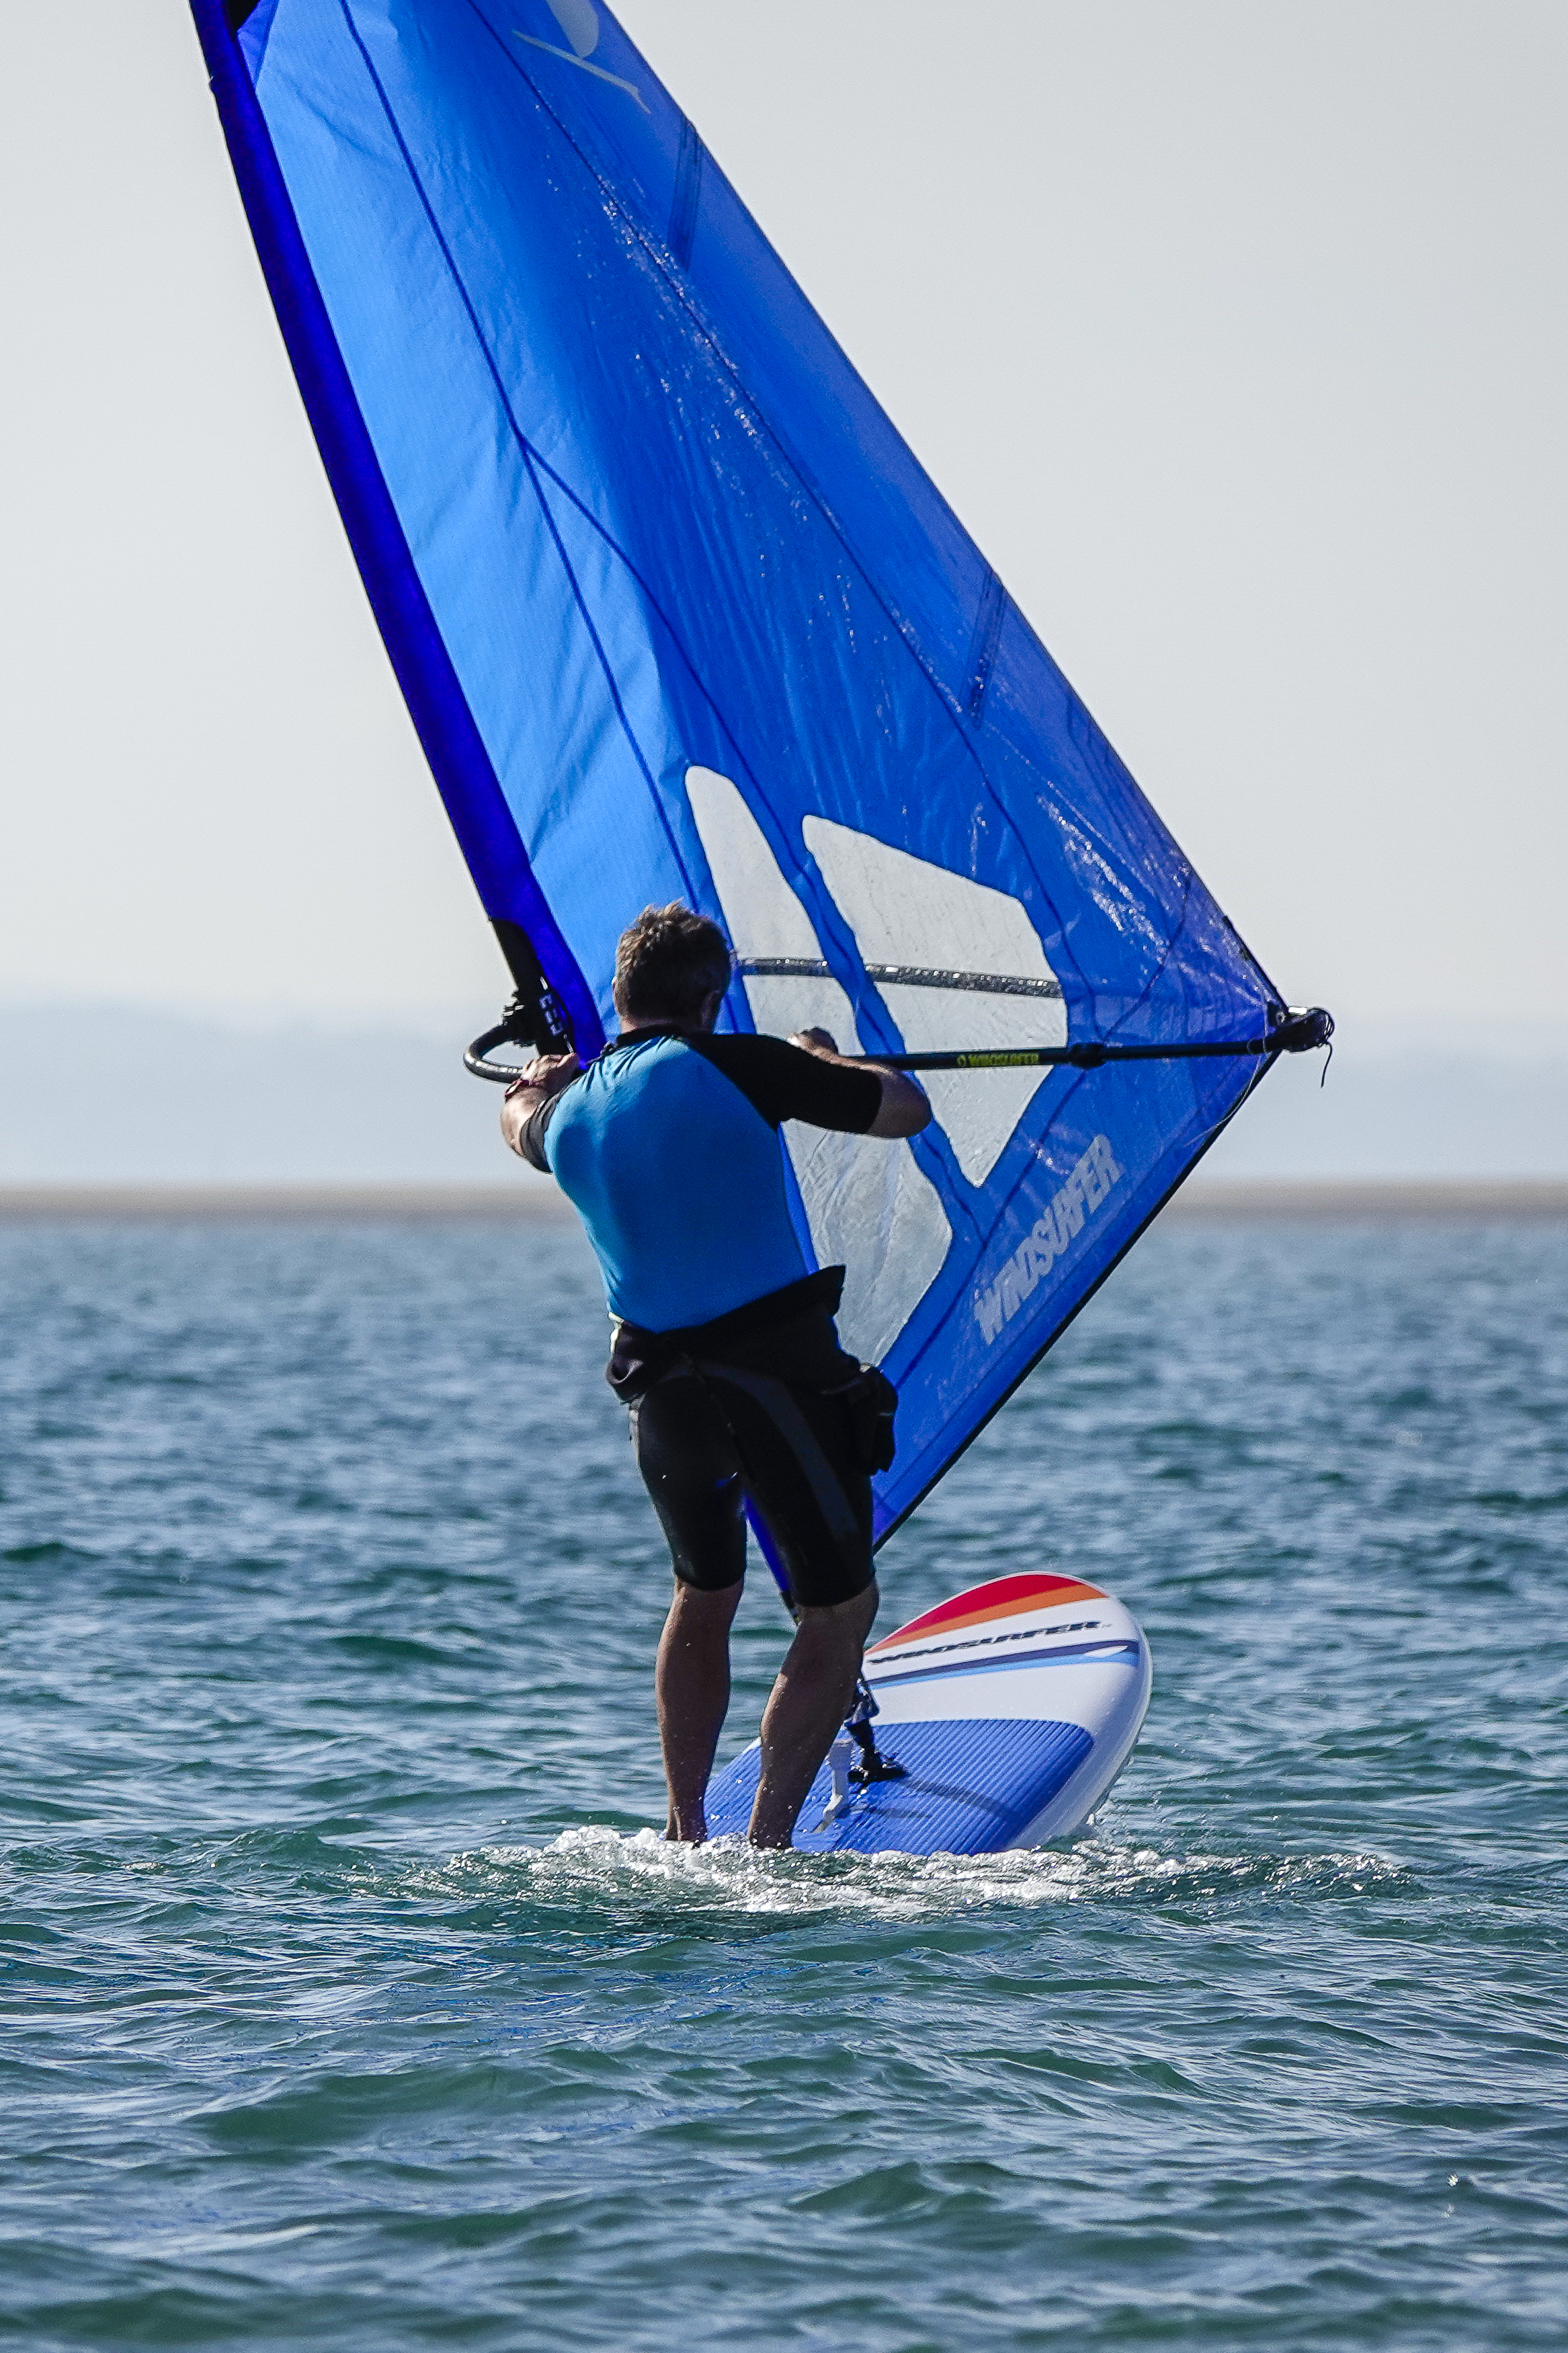 James Jagger Windsurfer LT #2